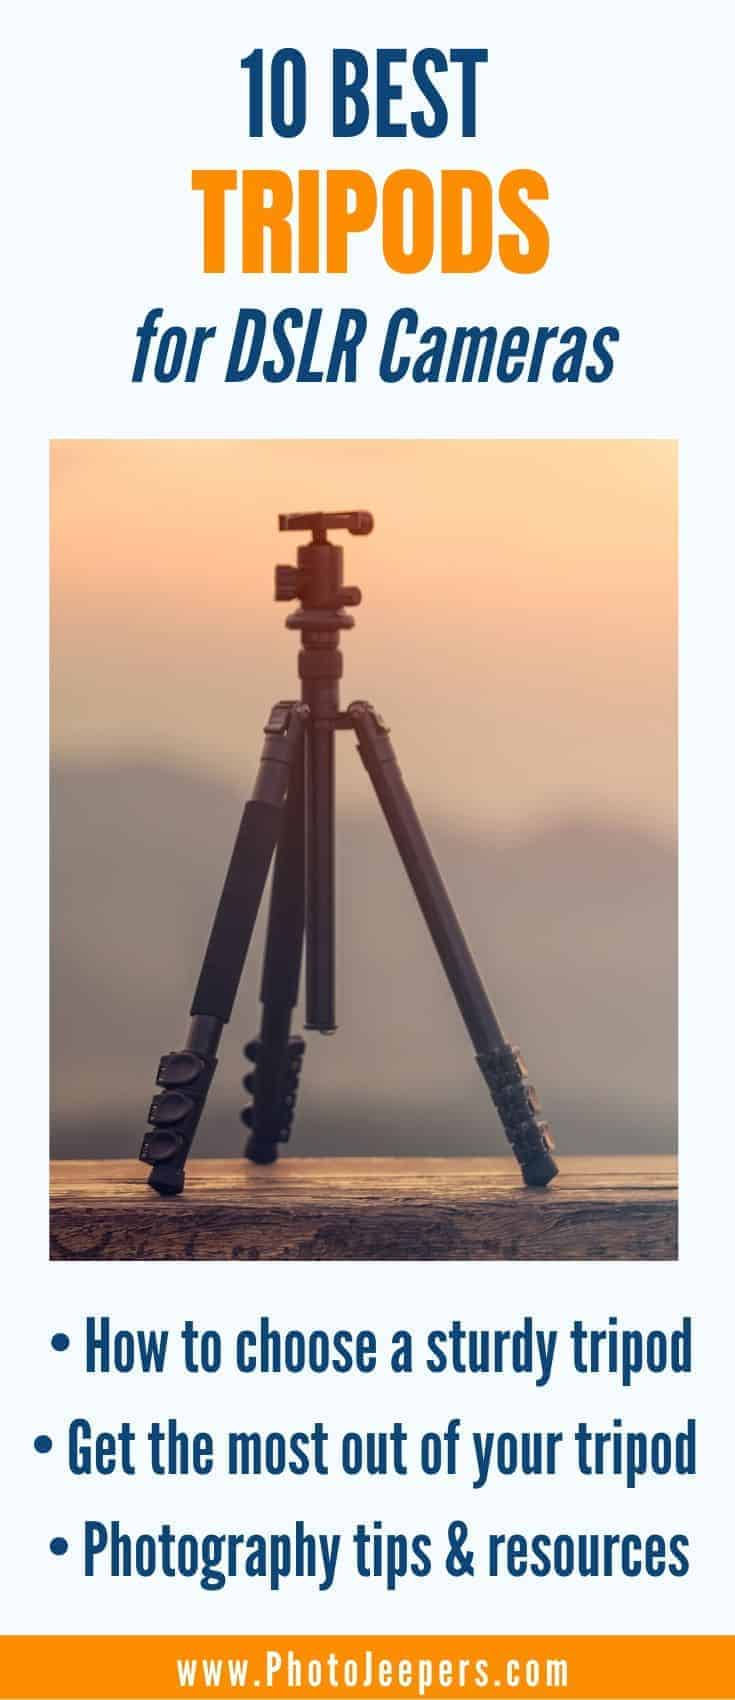 The top 10 sturdy tripods for DSLRs and heavy lenses for all kinds of budgets | How to choose the best sturdy camera tripod for your type of photography | Insights for buying the best tripod for travel, portraits, weddings, sports, and wildlife photography | How to get the most out of your tripod - maintenance and storage tips especially for the frequent travelers #photography #tripod #cameragear #photojeepers